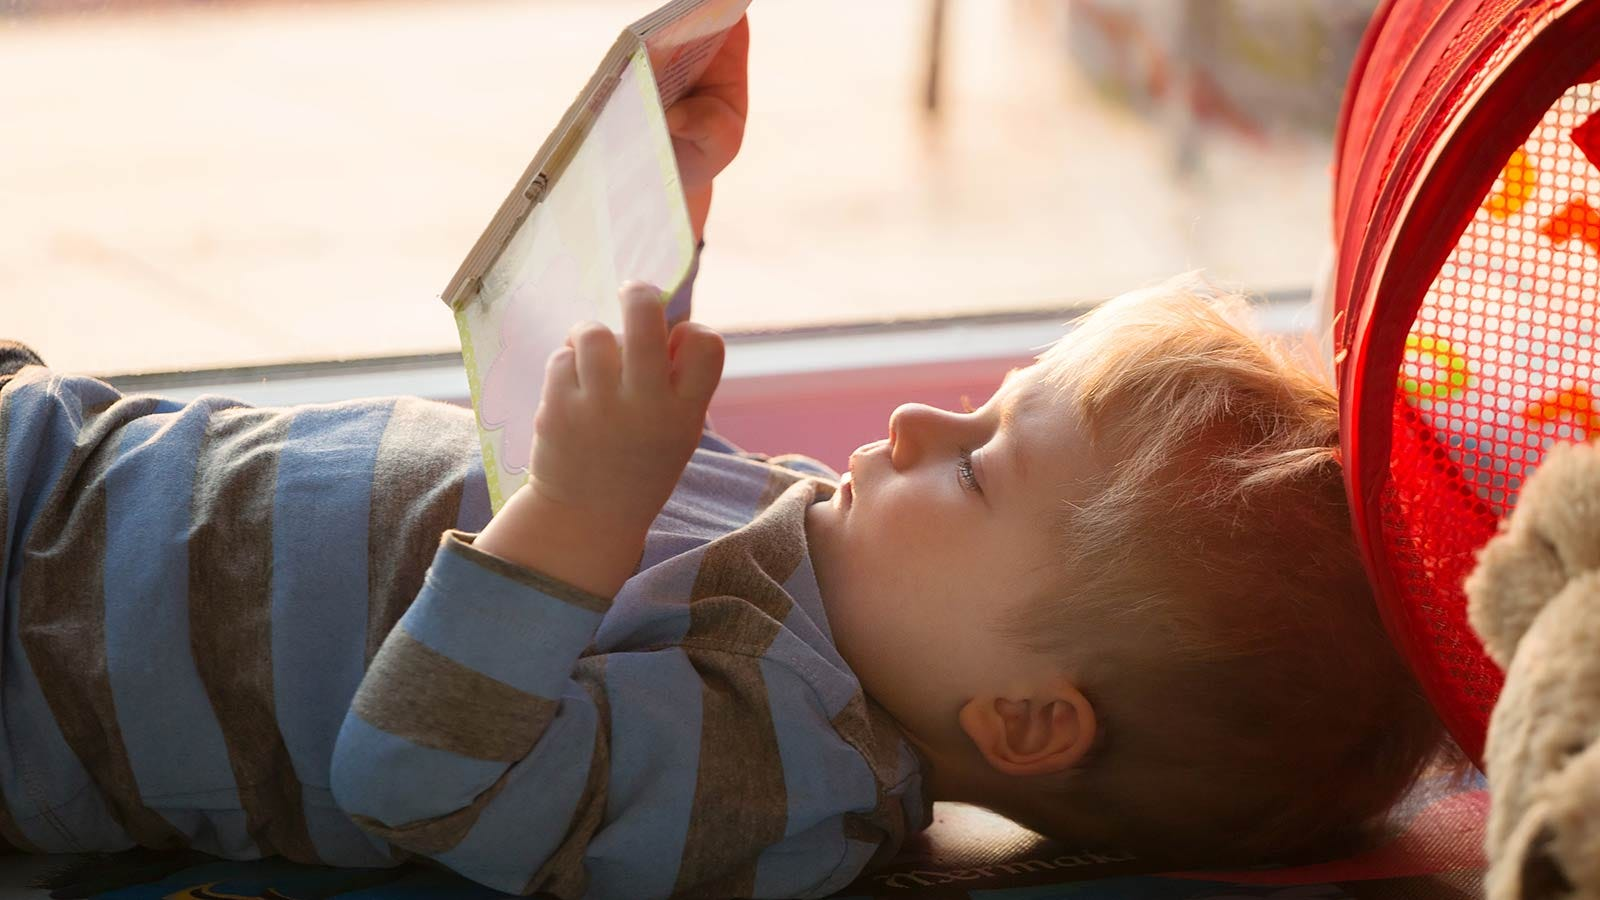 A little boy lying on the floor and looking at a book.